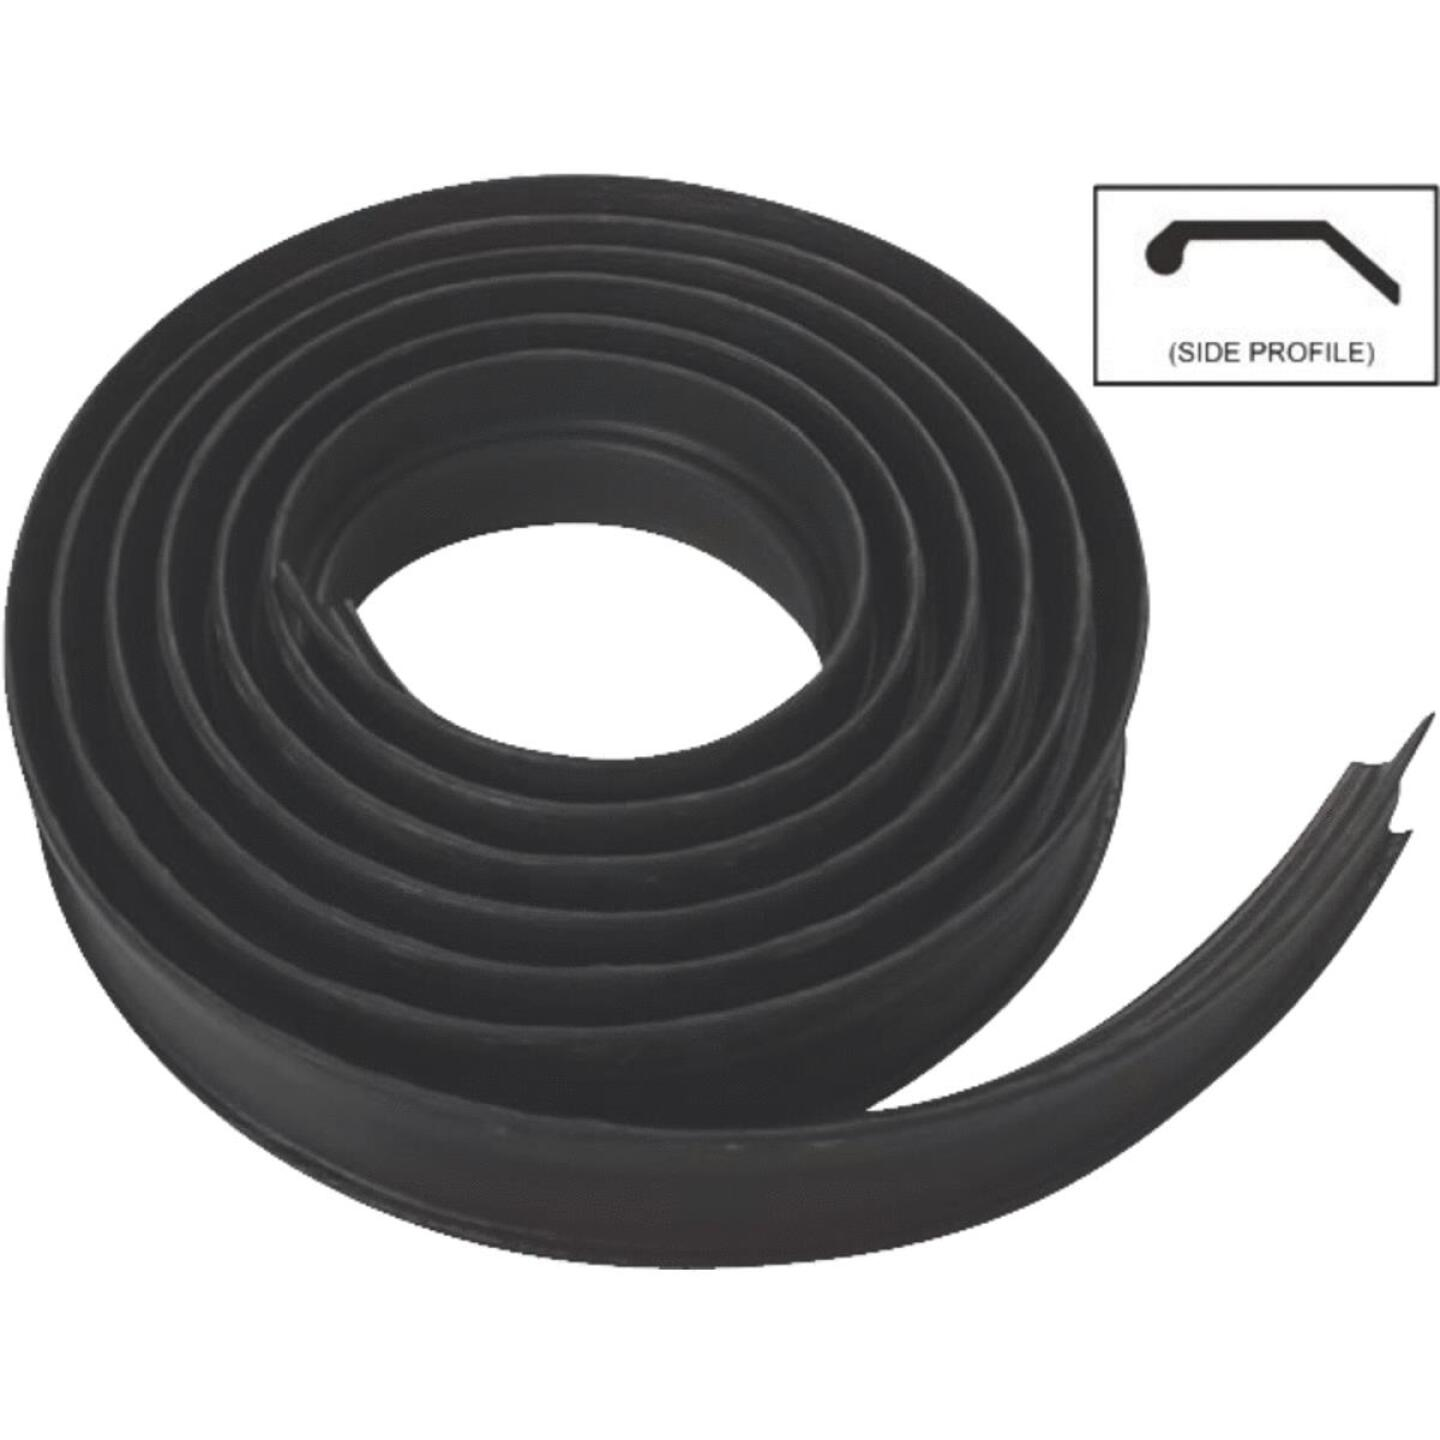 National Garage Door 10 Ft. Black Vinyl Weatherstripping For Wood Door Image 1